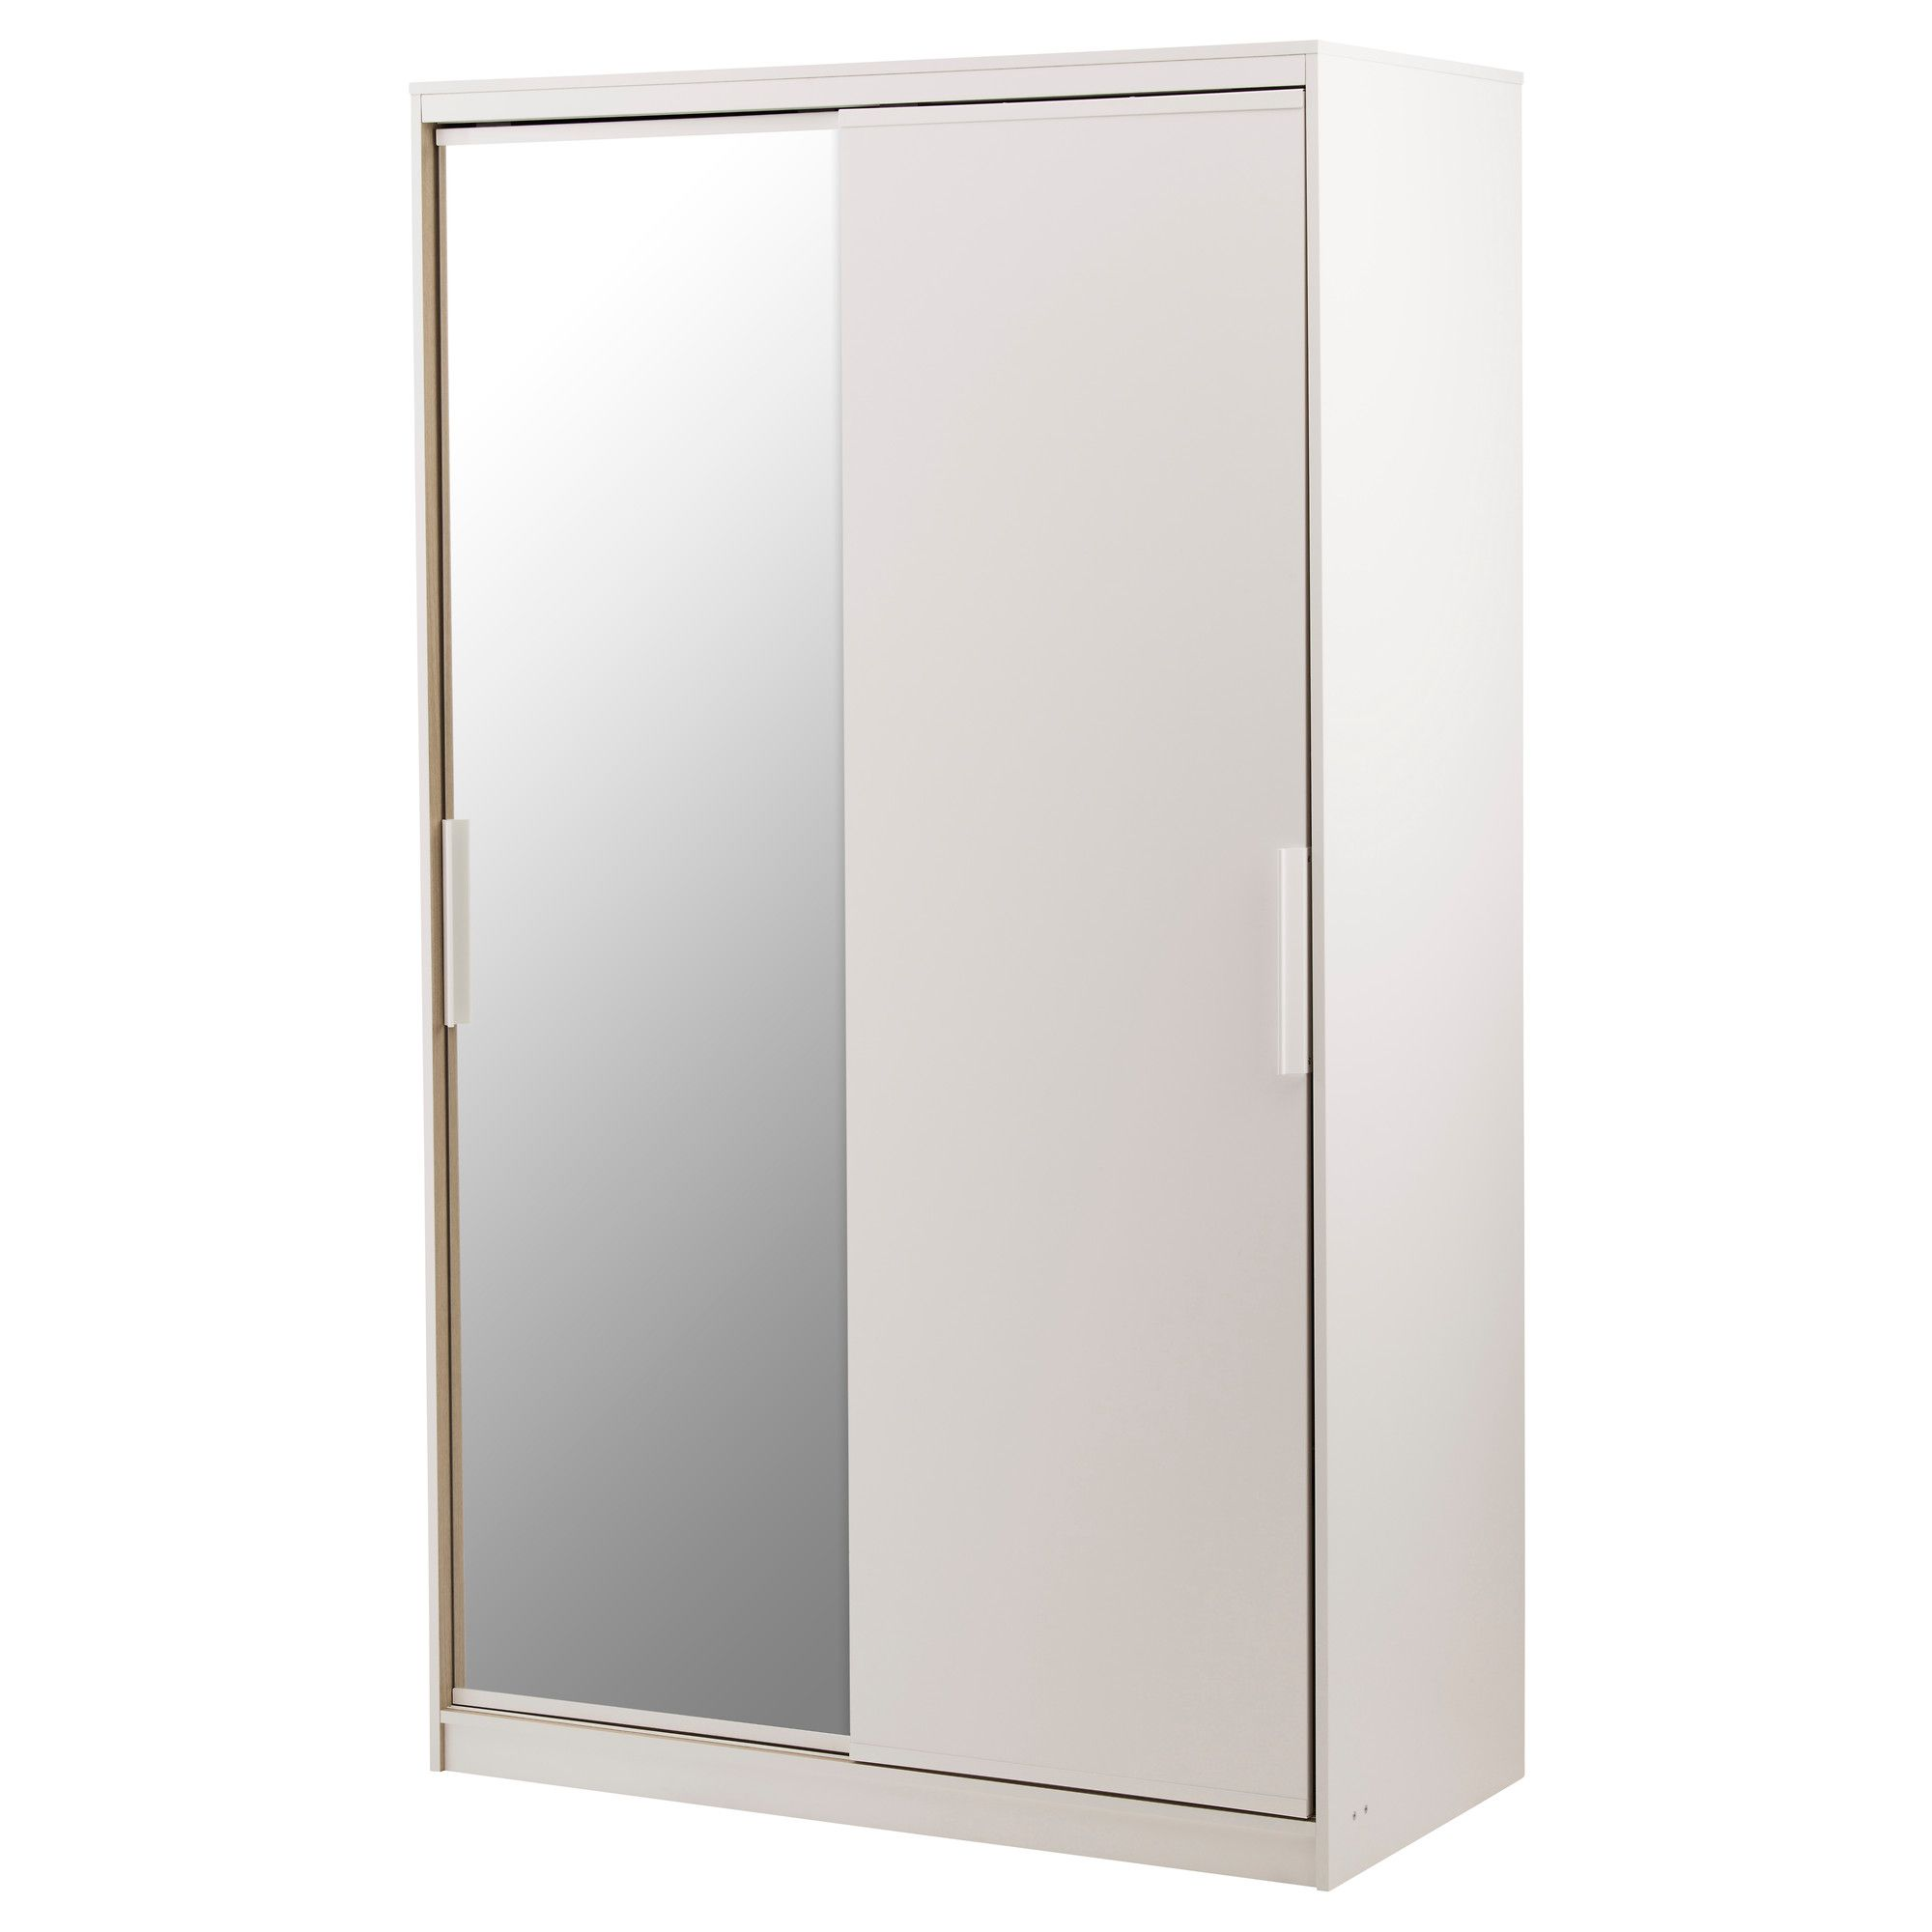 Home & Garden Armoires & Wardrobes Normandy 3 Door 3 Drawer Mirrored Wardrobe White Diversified Latest Designs